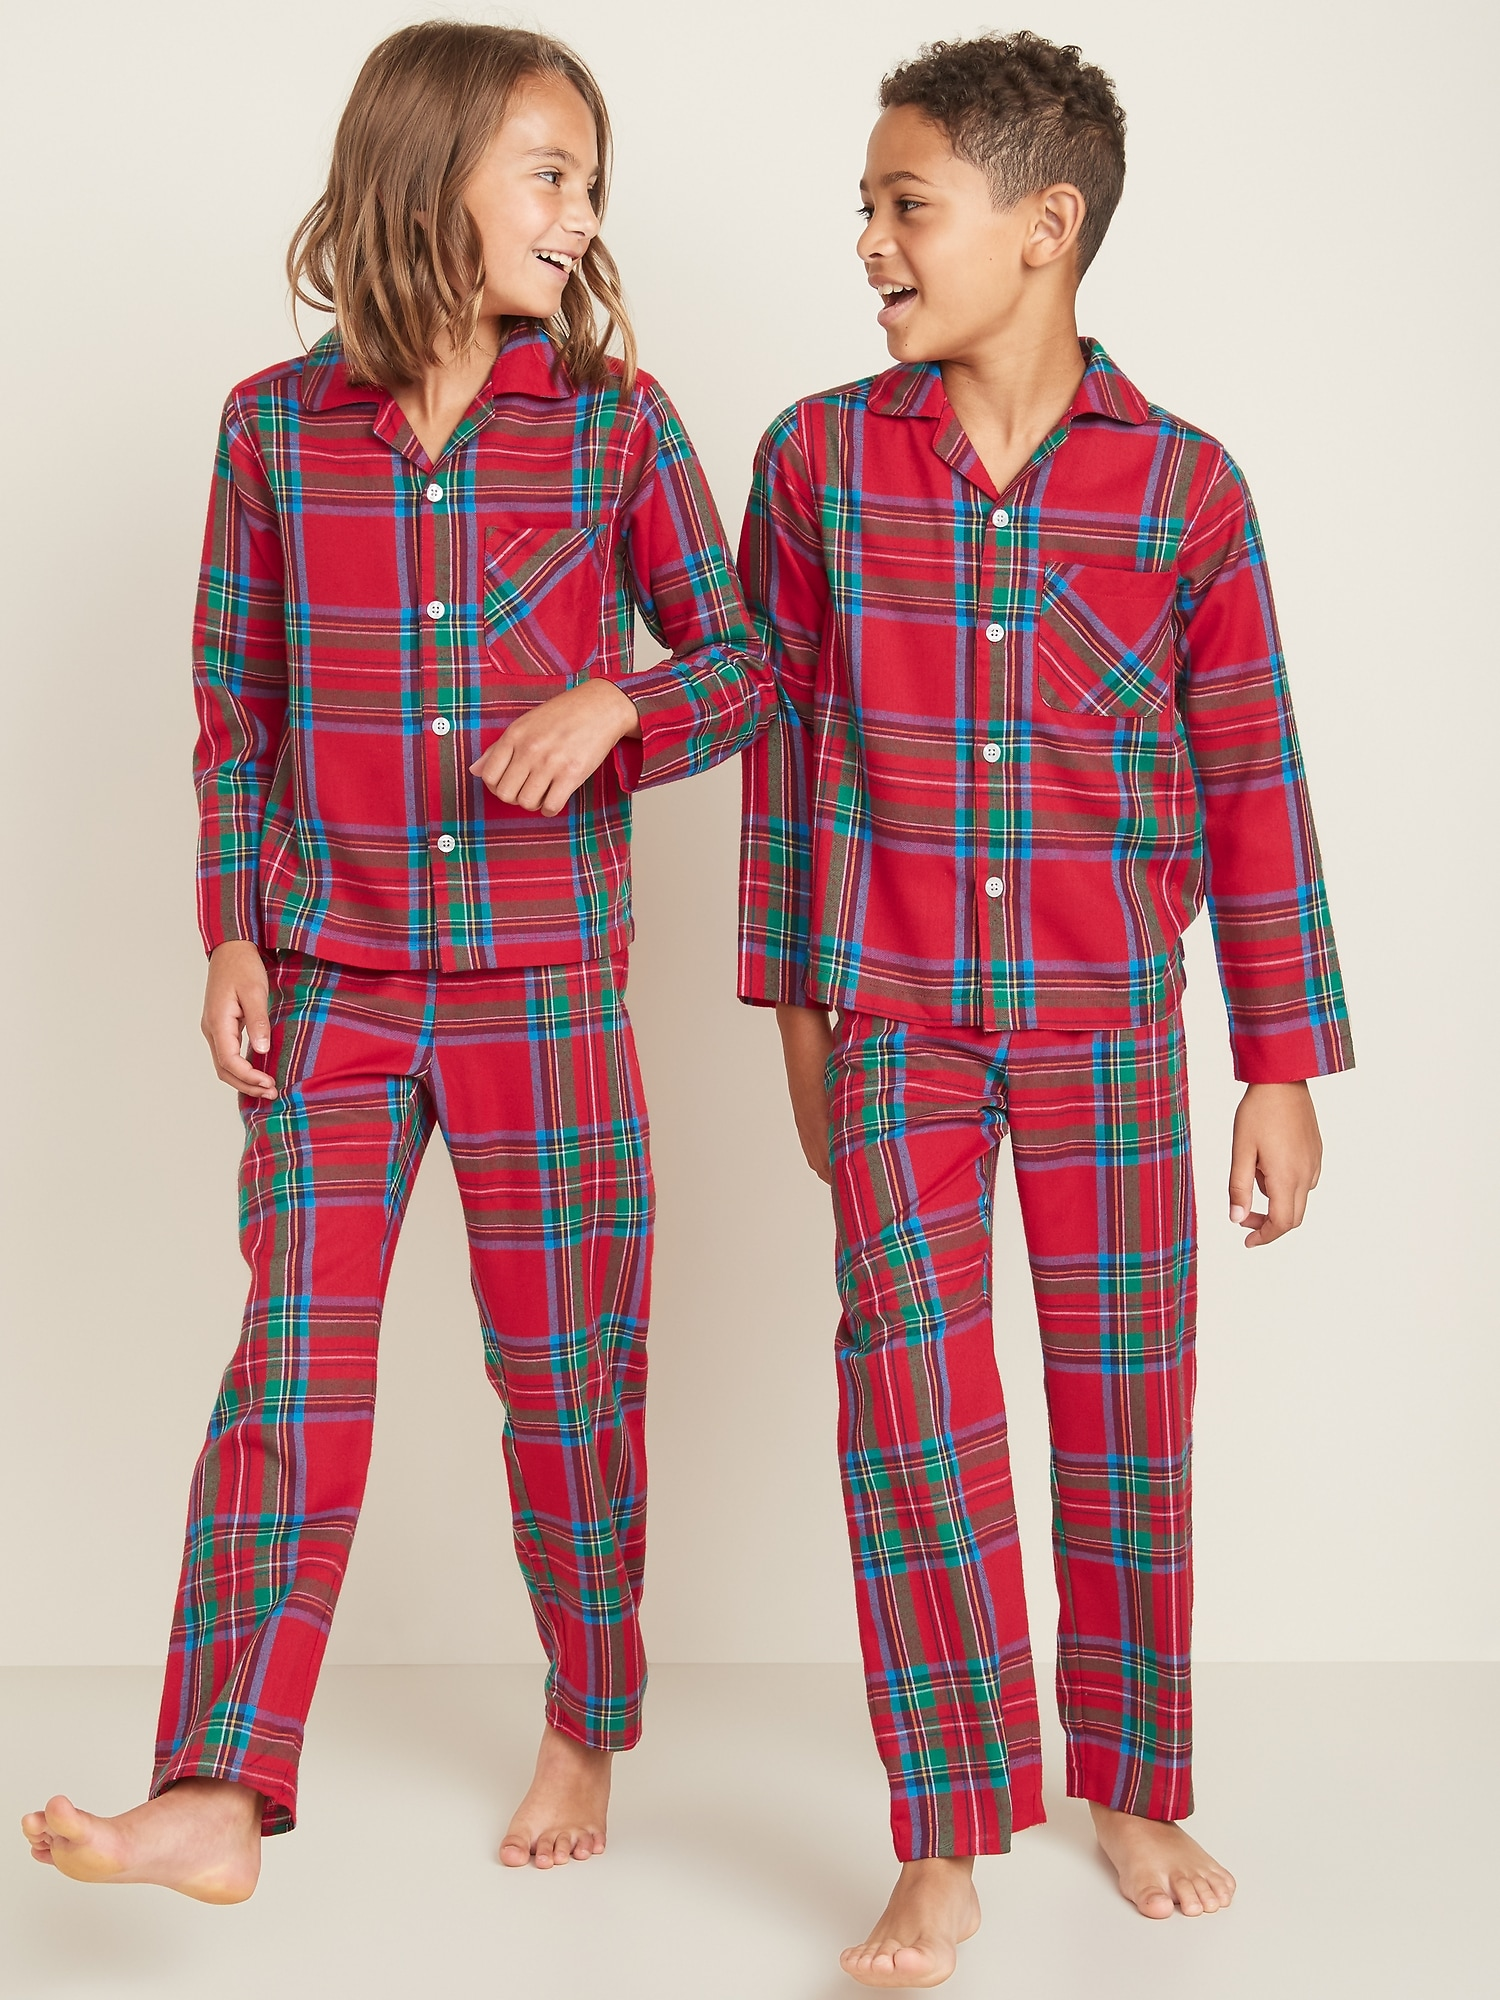 Printed Pajamas for Kids